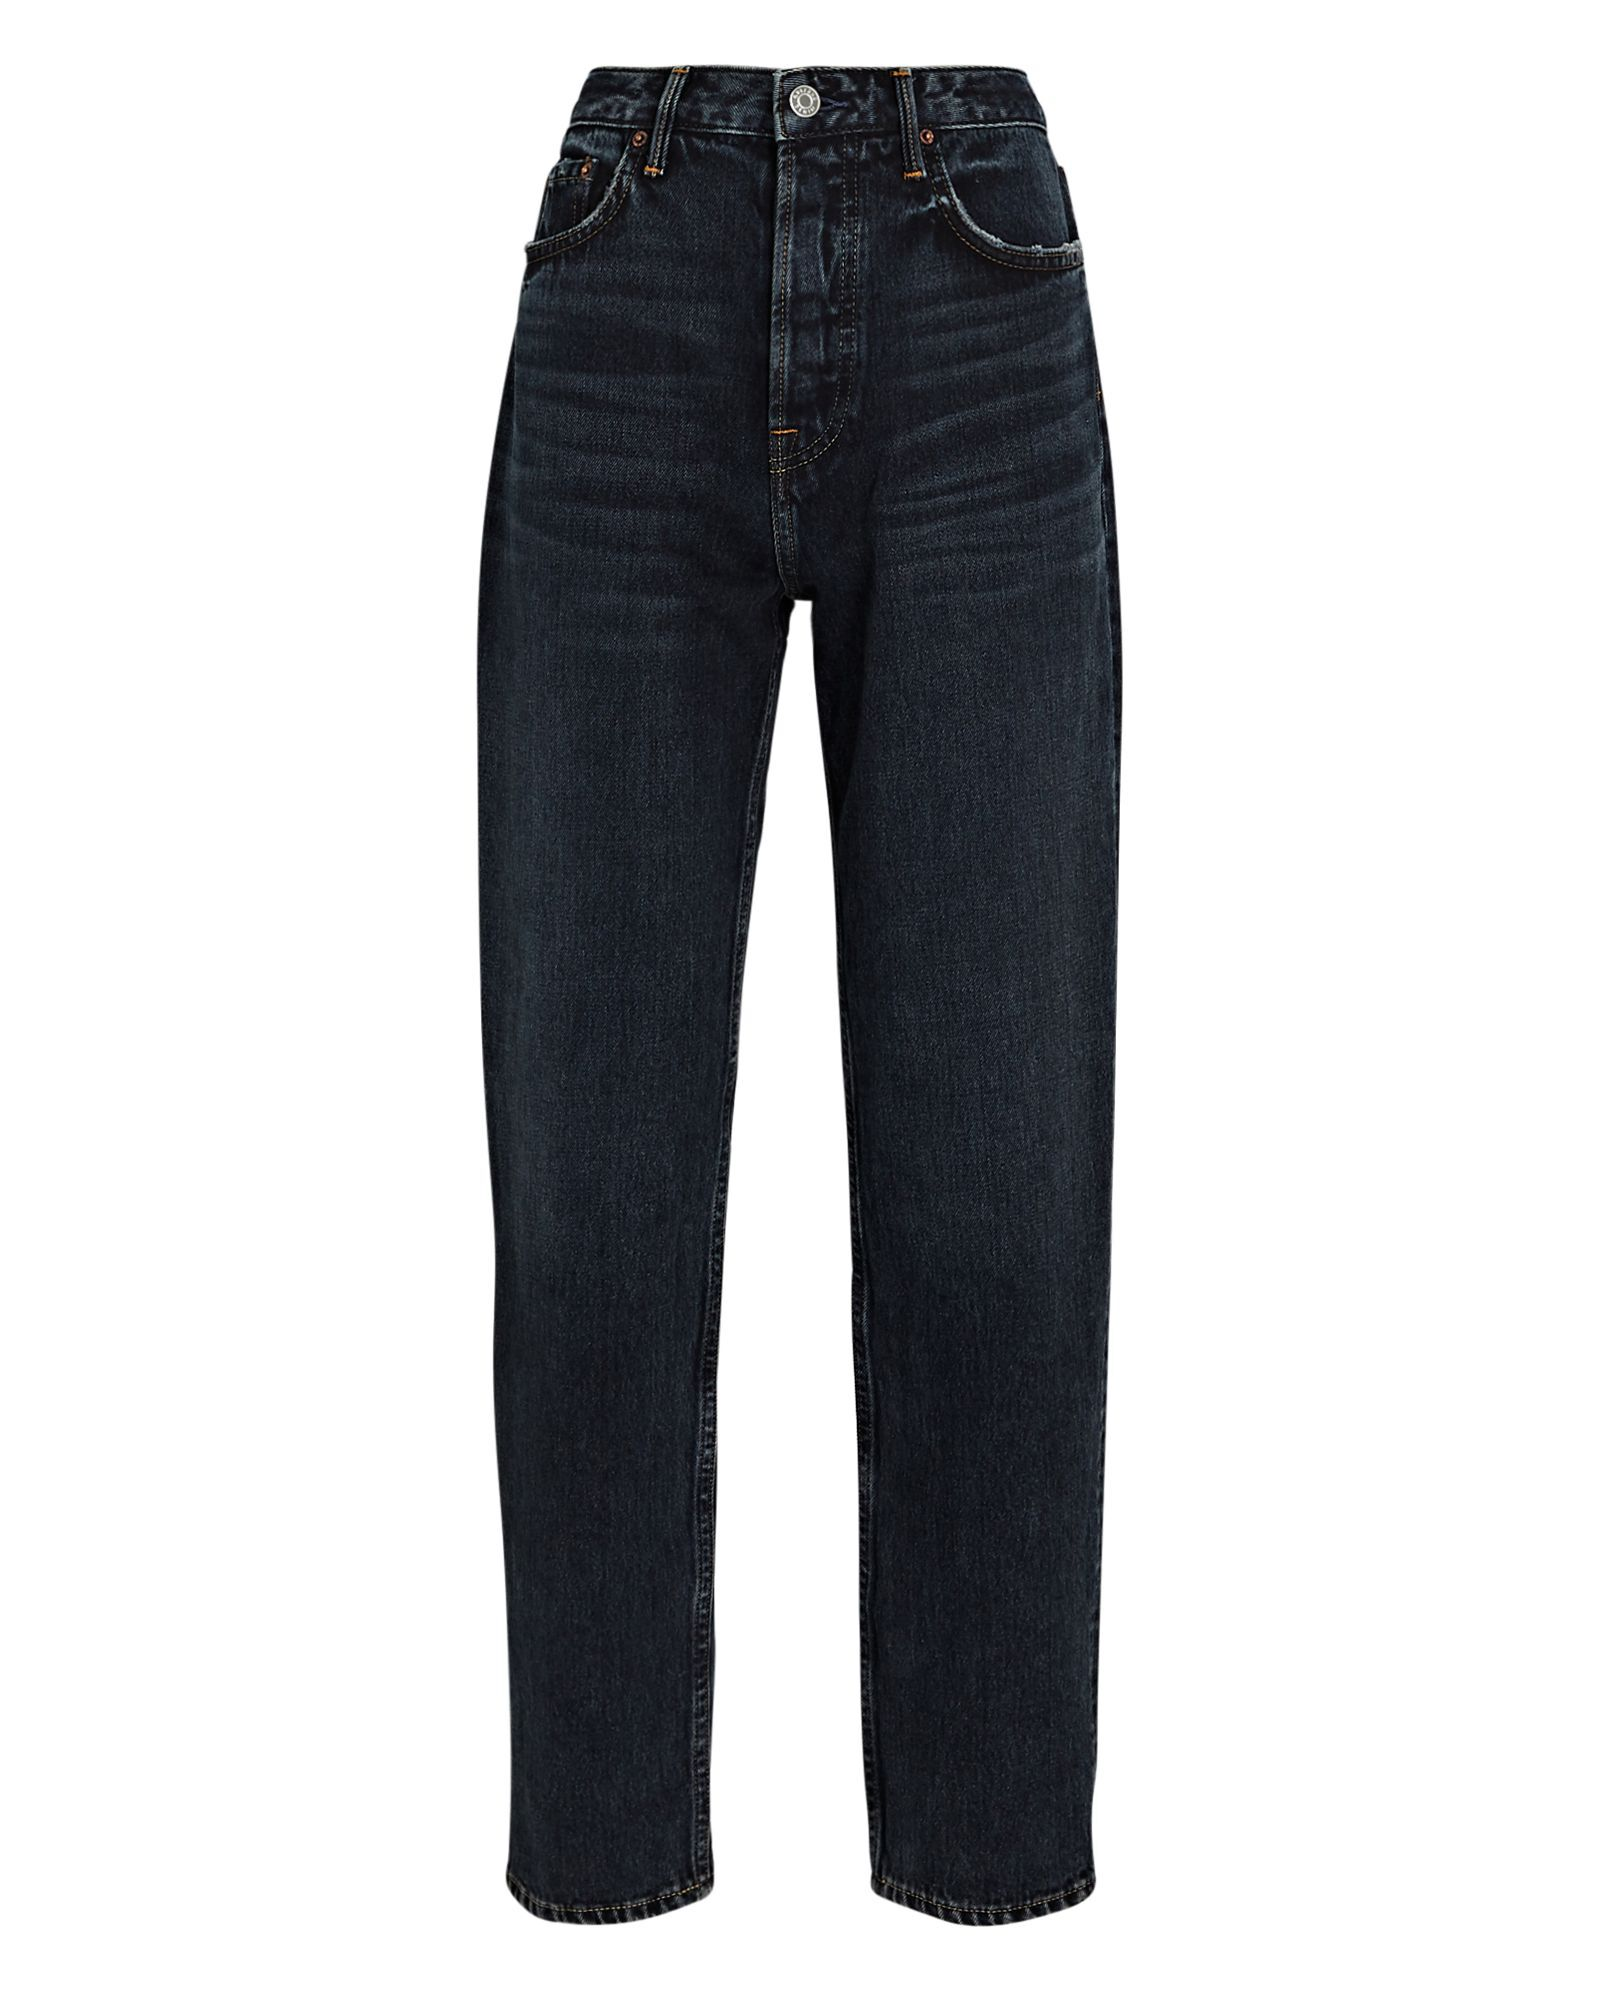 Devon High-Rise Straight-Leg Jeans, INTO THE ABYSS, hi-res